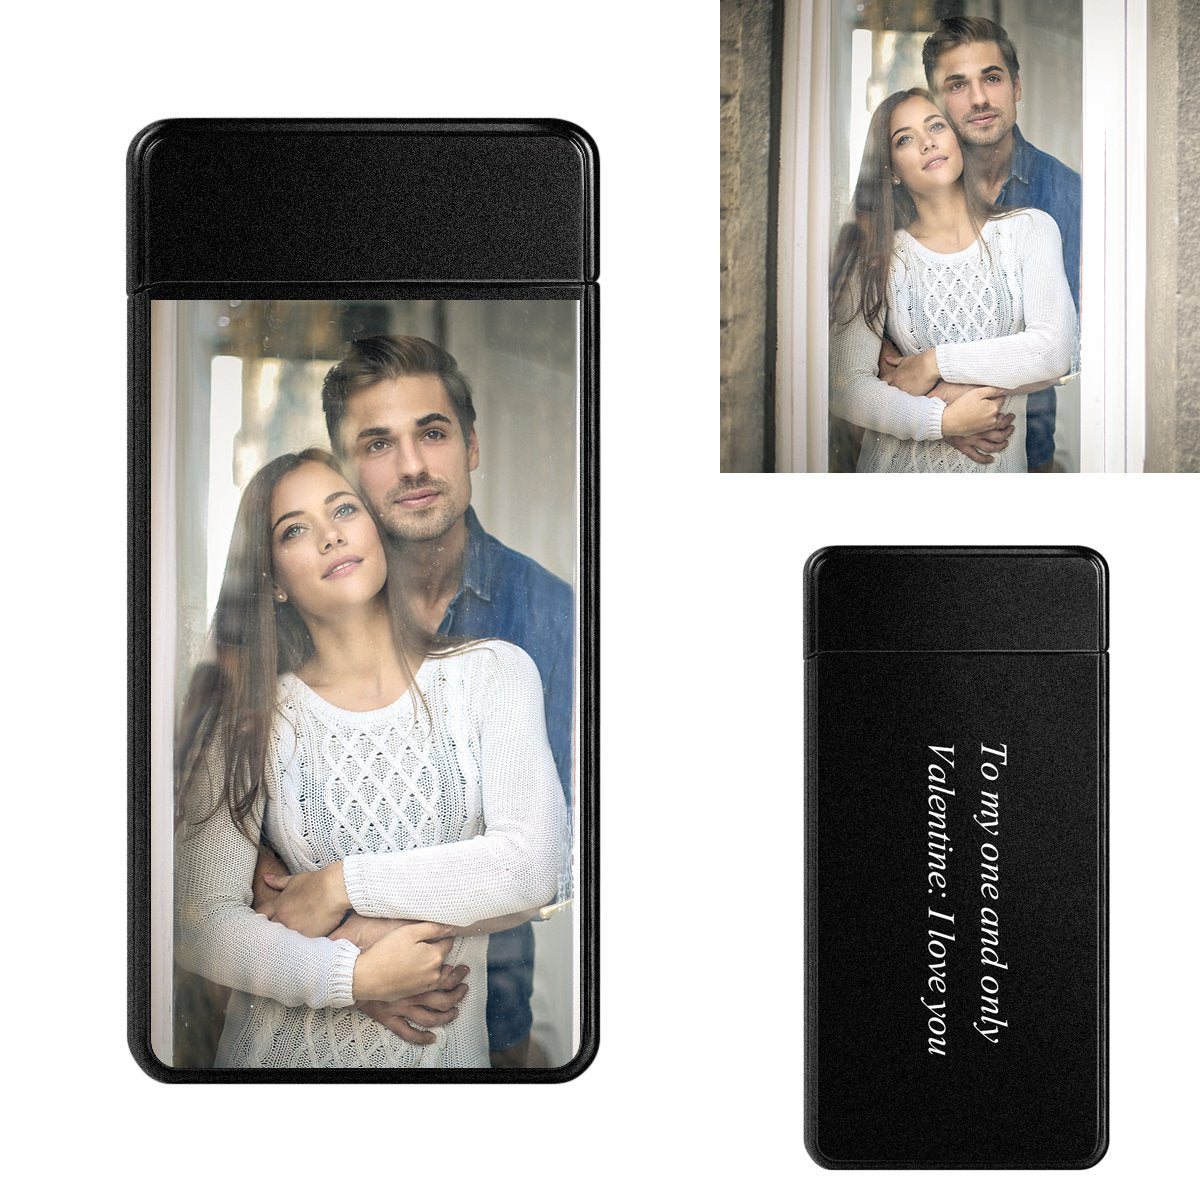 Scrub Black | Custom Engraved Photo Lighter | Color Screen | Electronic Cigarette Lighter| USB Power